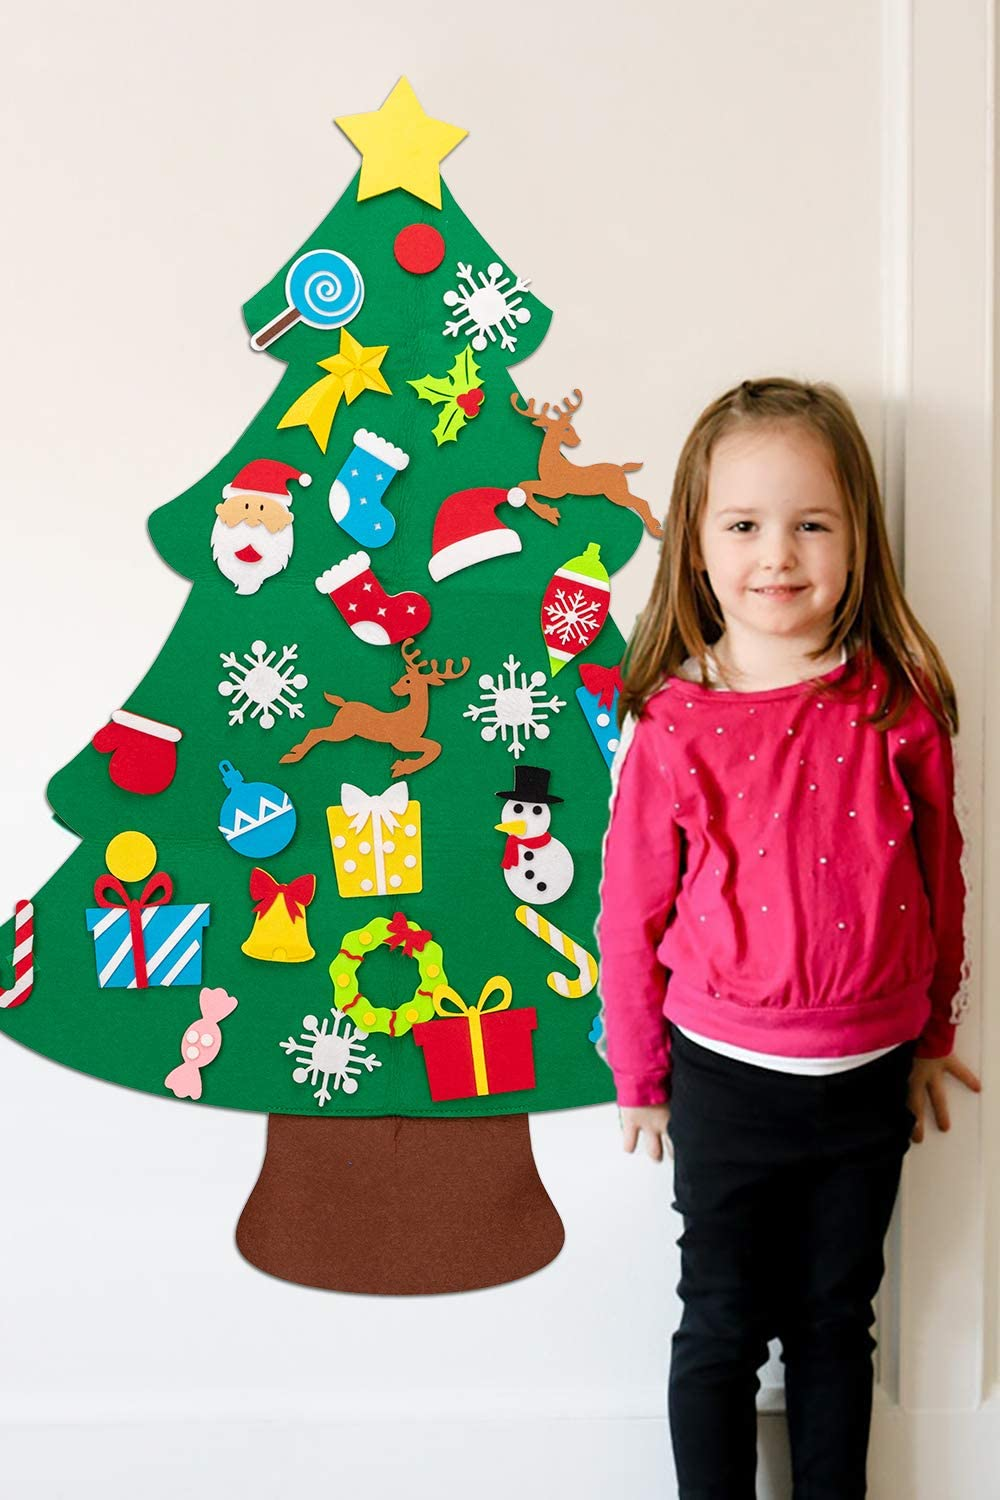 Xmas Decorations Wall Hanging 32 Ornaments Kids Gifts Party Supplies jollylife 3ft DIY Felt Christmas Tree Set